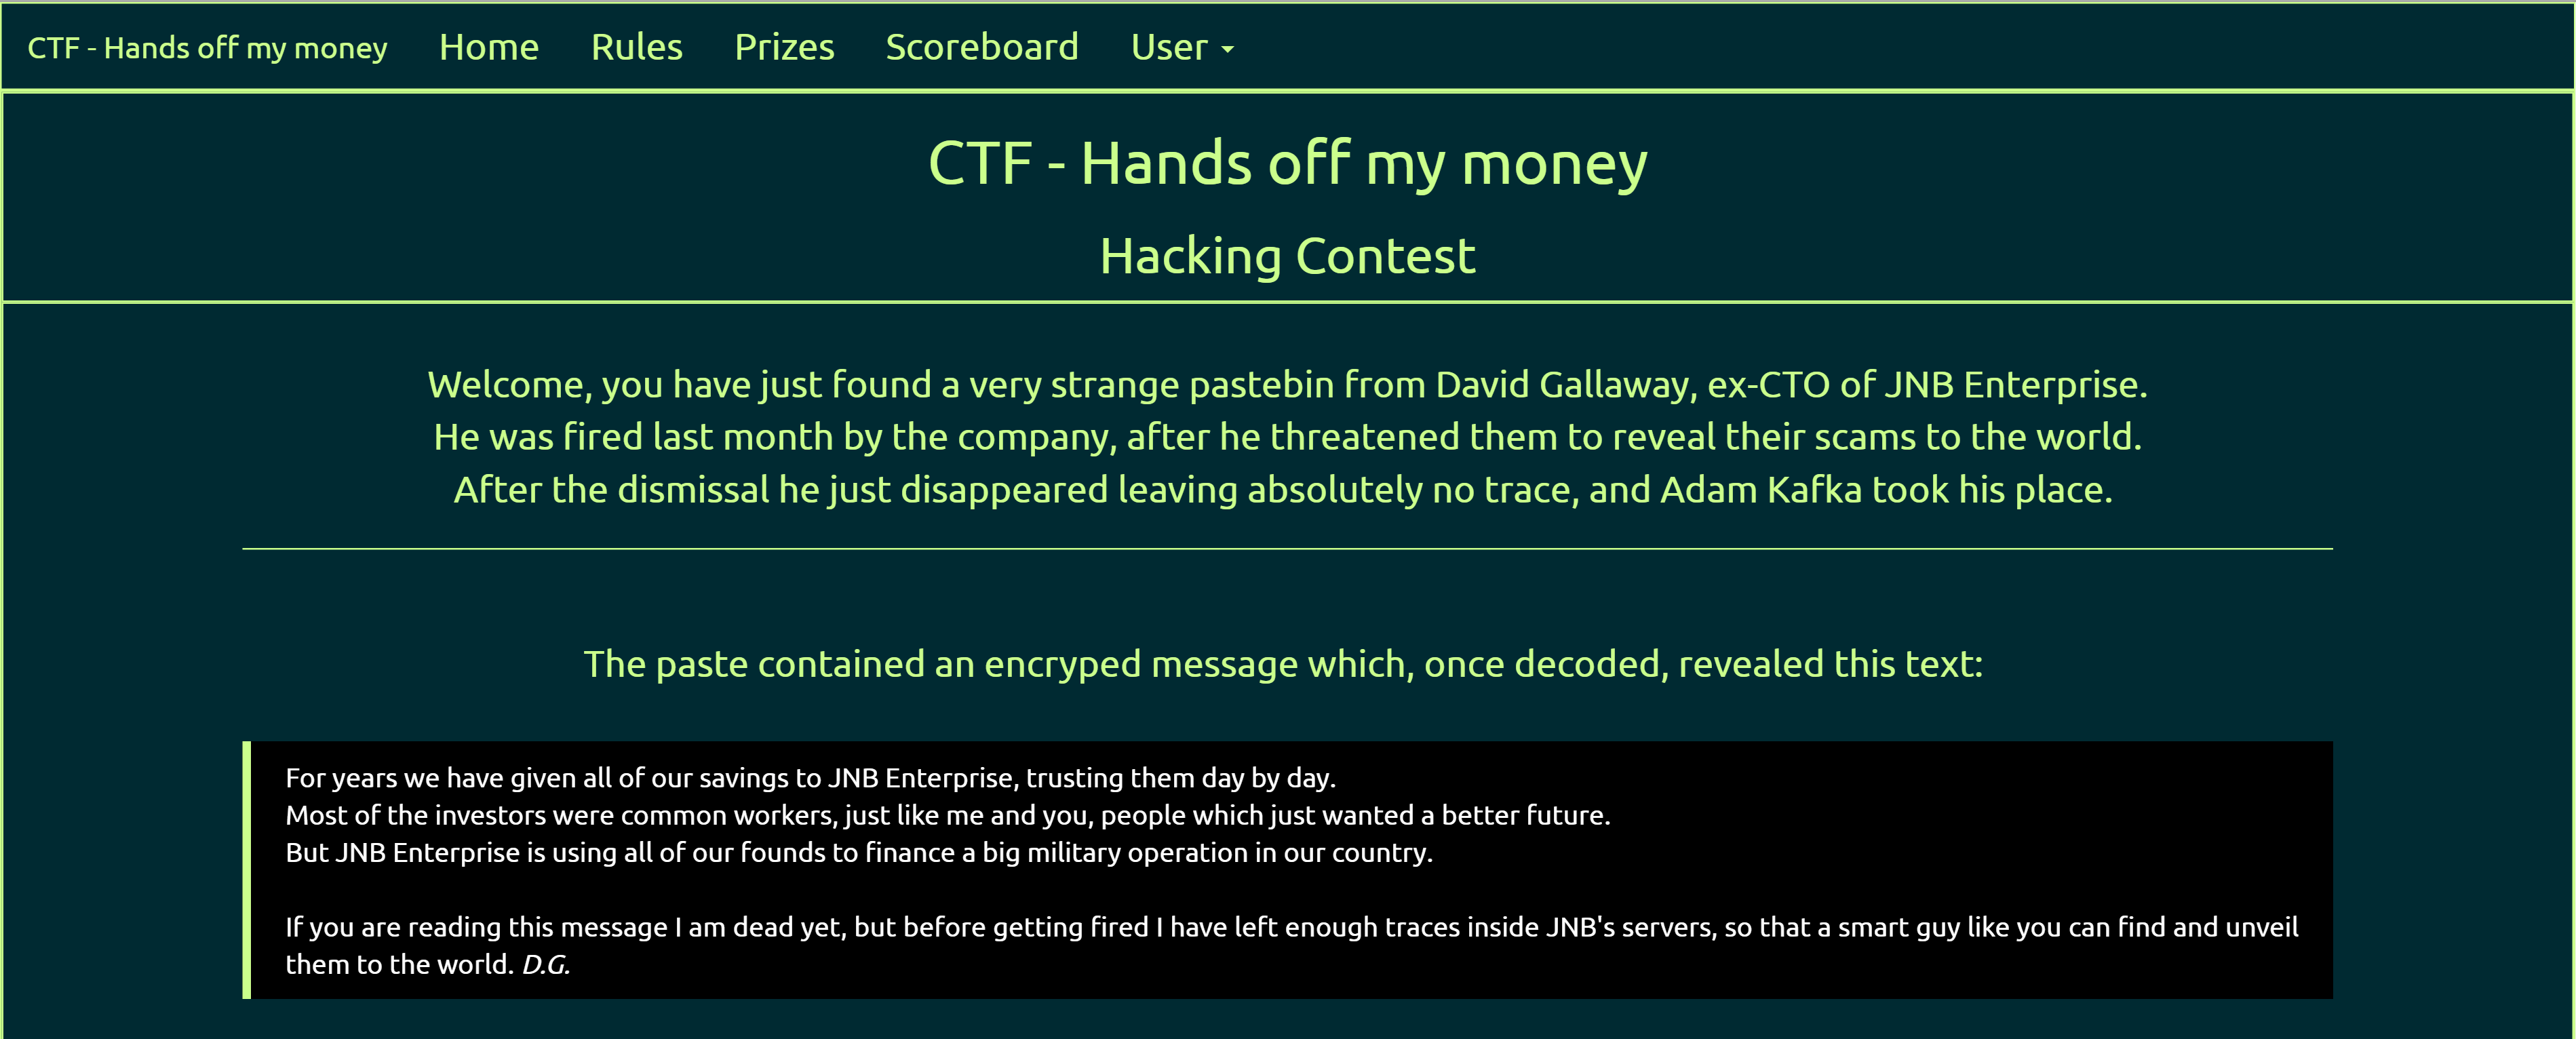 CTF - Hands off my money - http://www.oversecurity.net/2016/04/23/ctf-hands-off-my-money/